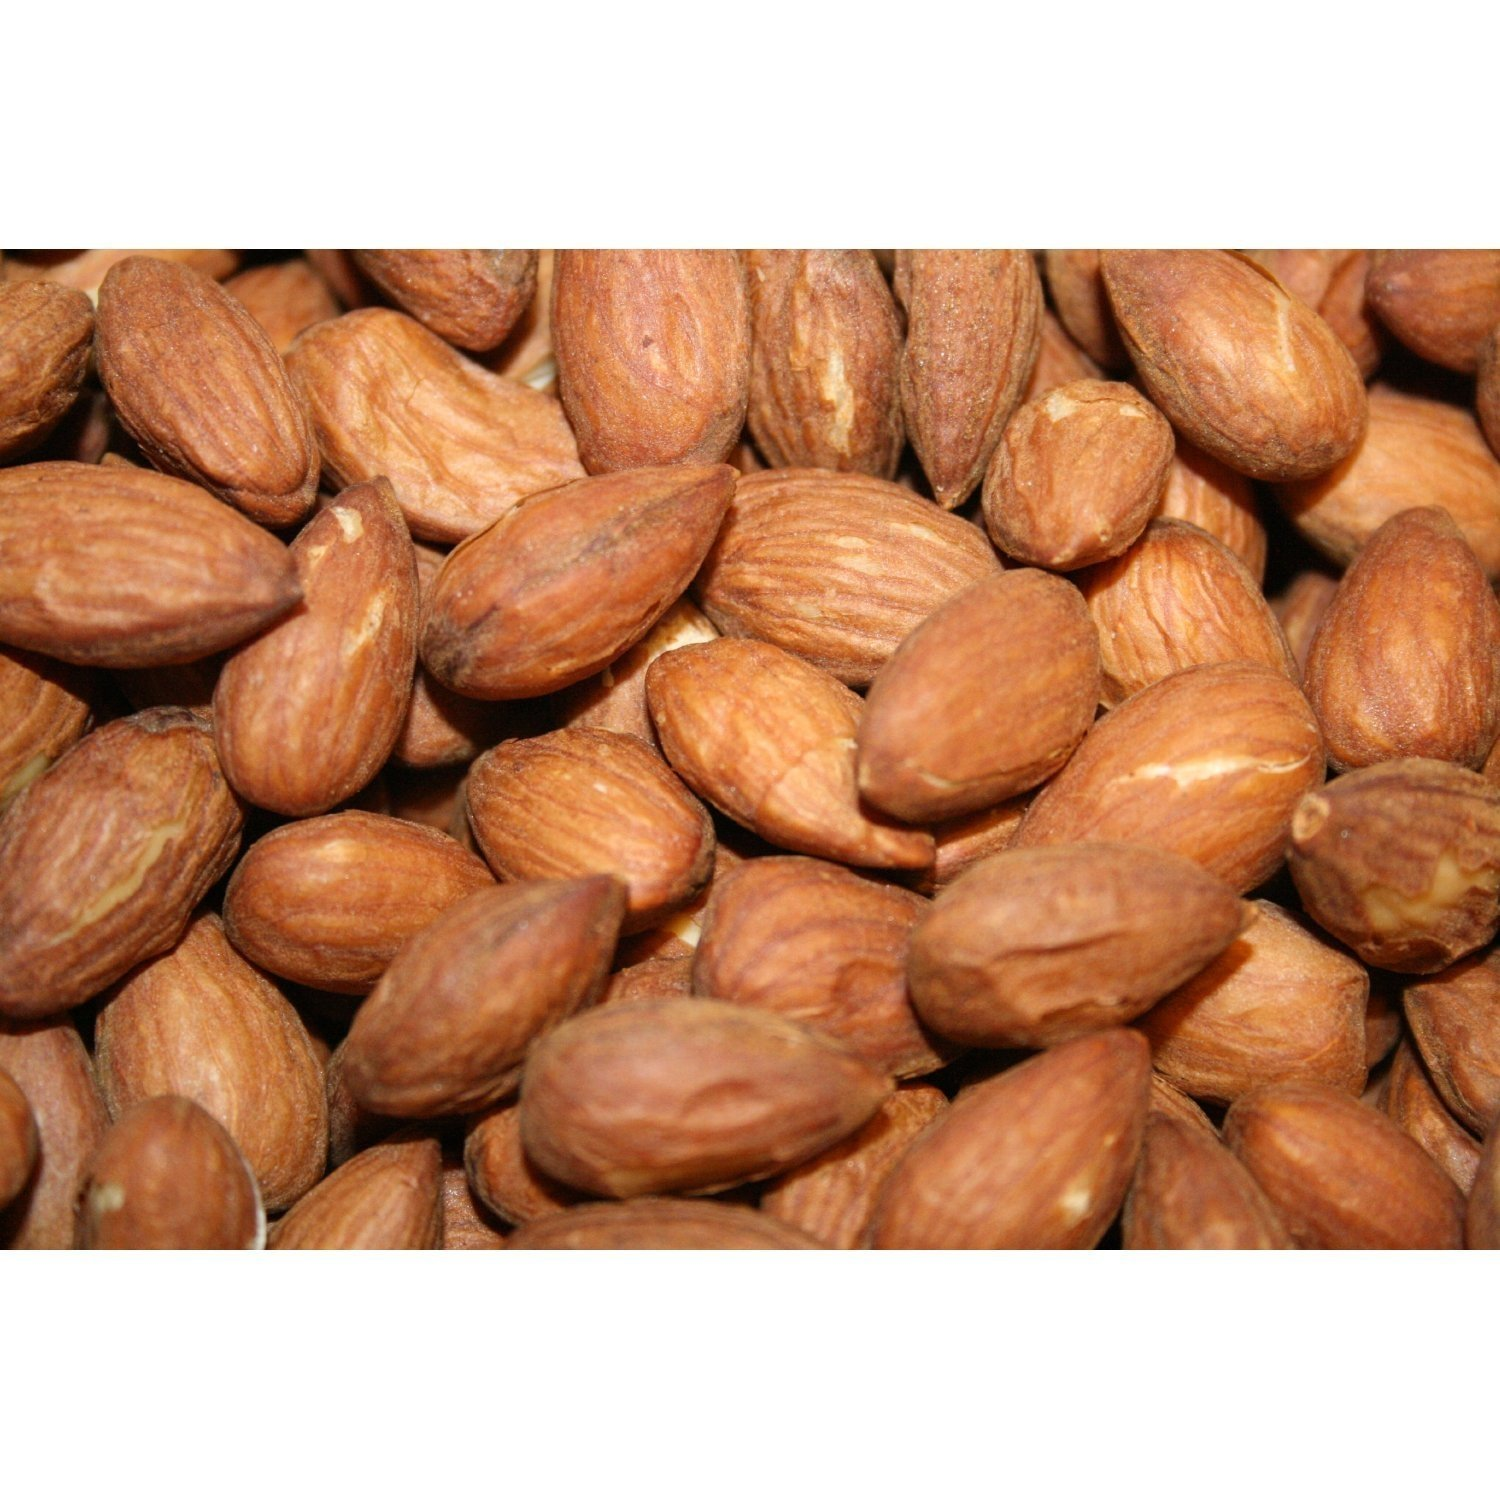 Lang's Chocolates Milk Chocolate Covered Almonds 8 ounce bag